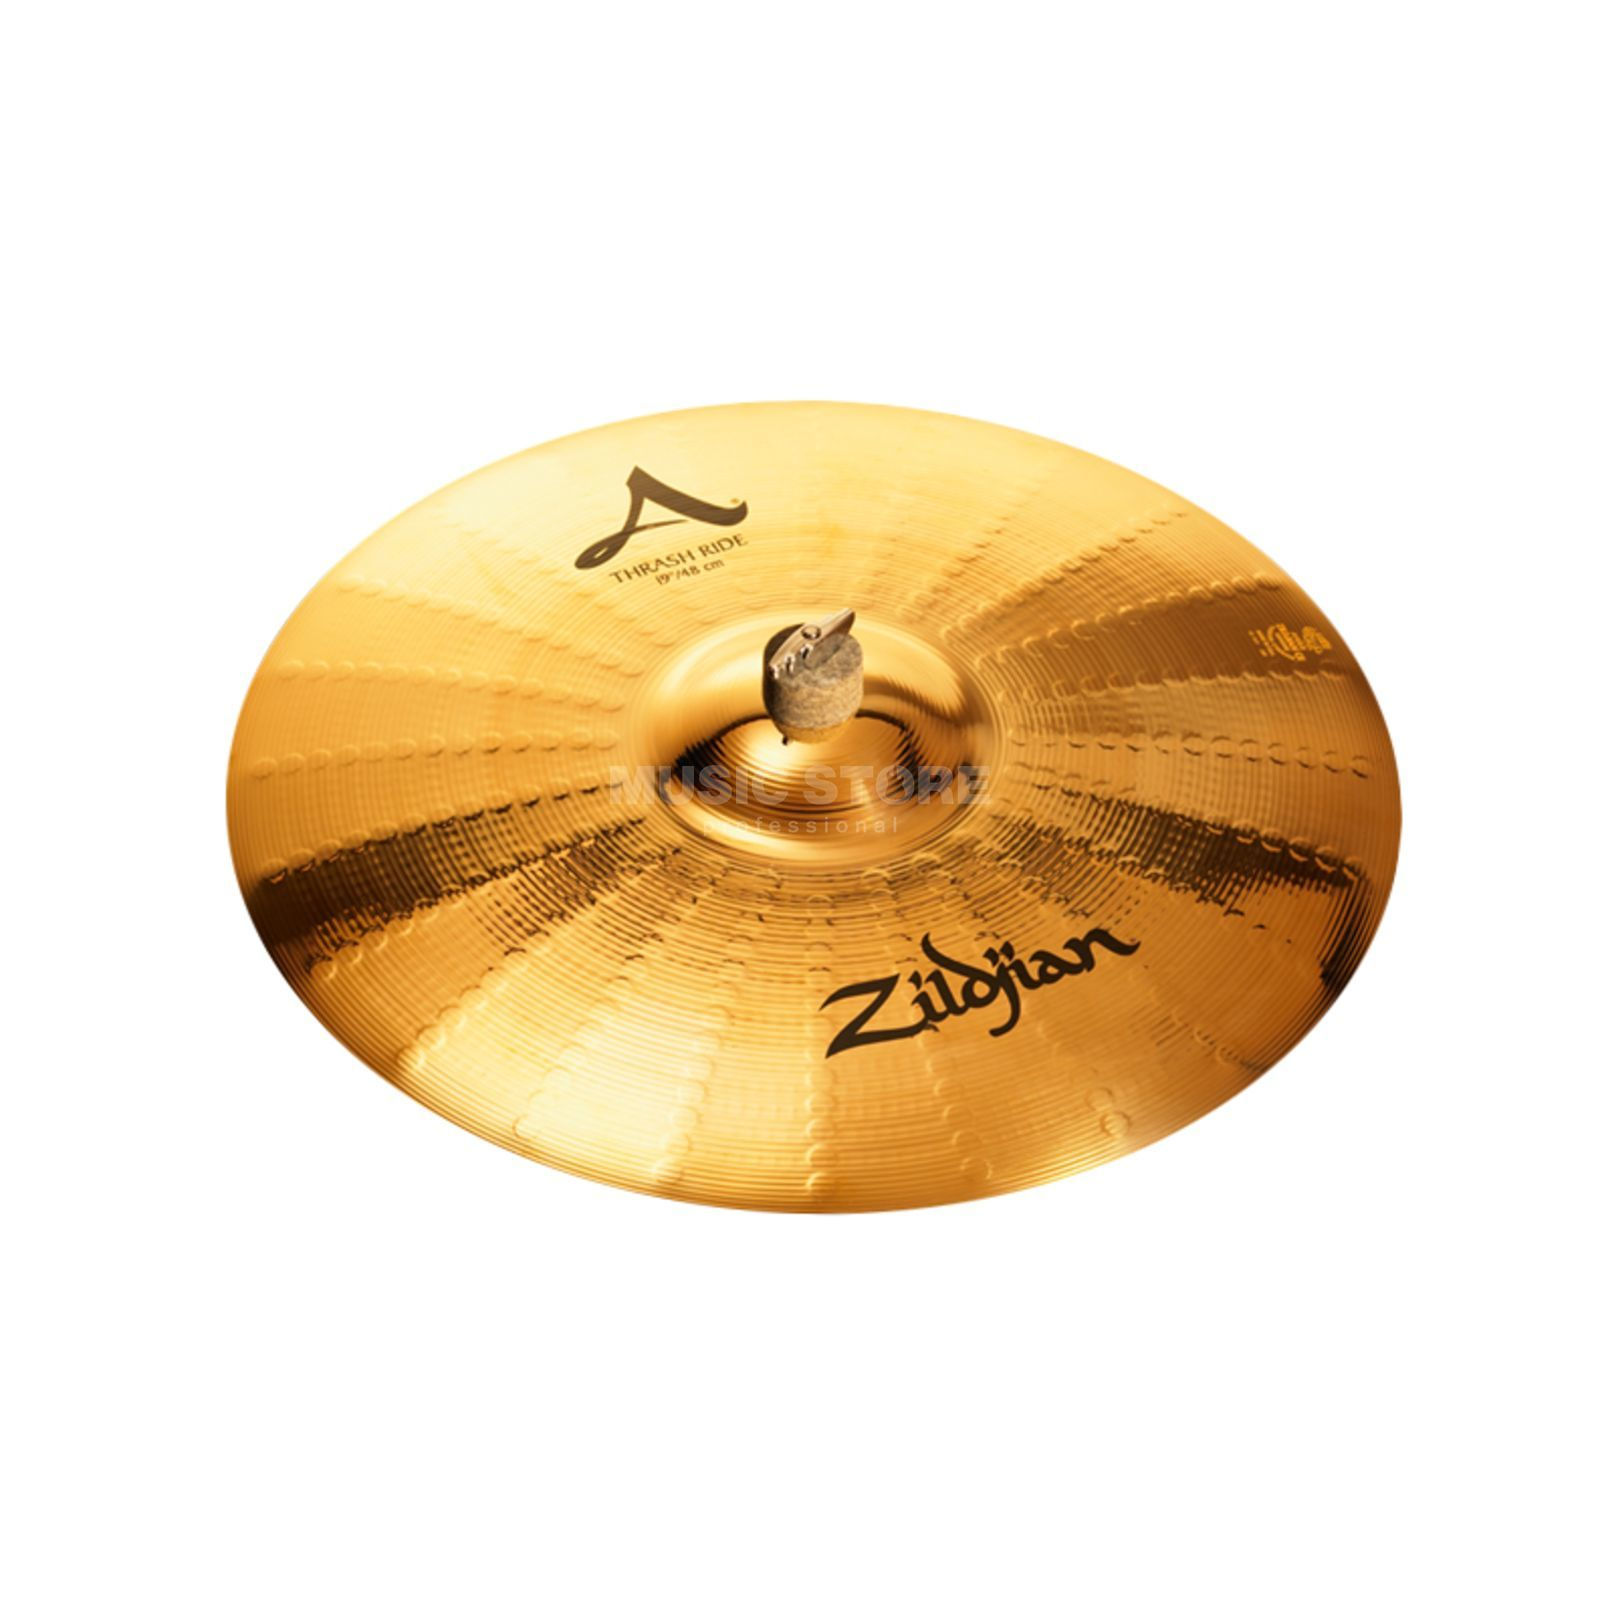 "Zildjian A' Zildjian Trash Ride 19"", Brilliant Finish Produktbild"